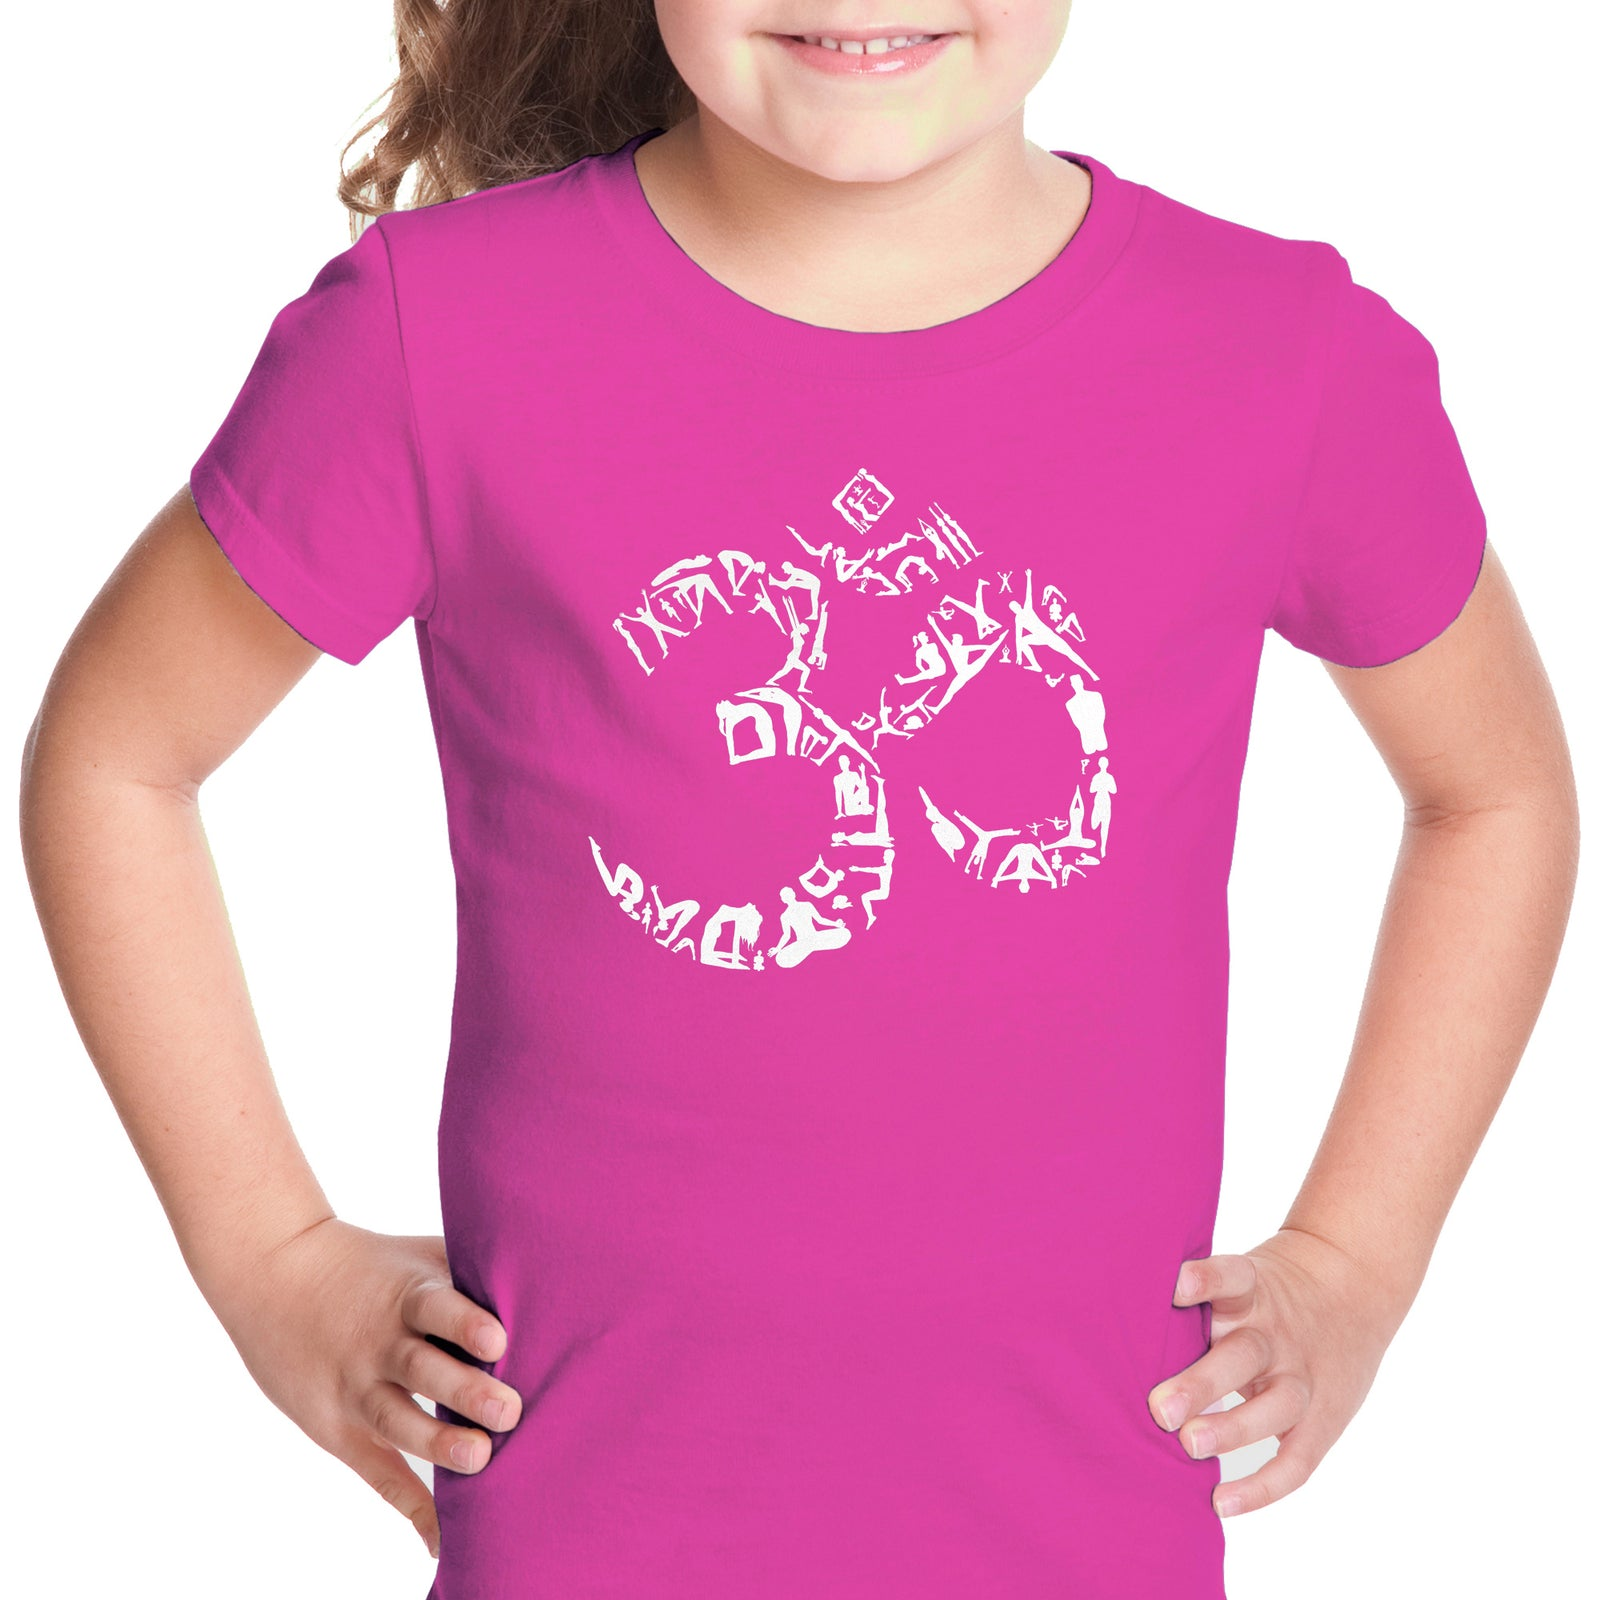 Girl's T-shirt - THE OM SYMBOL OUT OF YOGA POSES